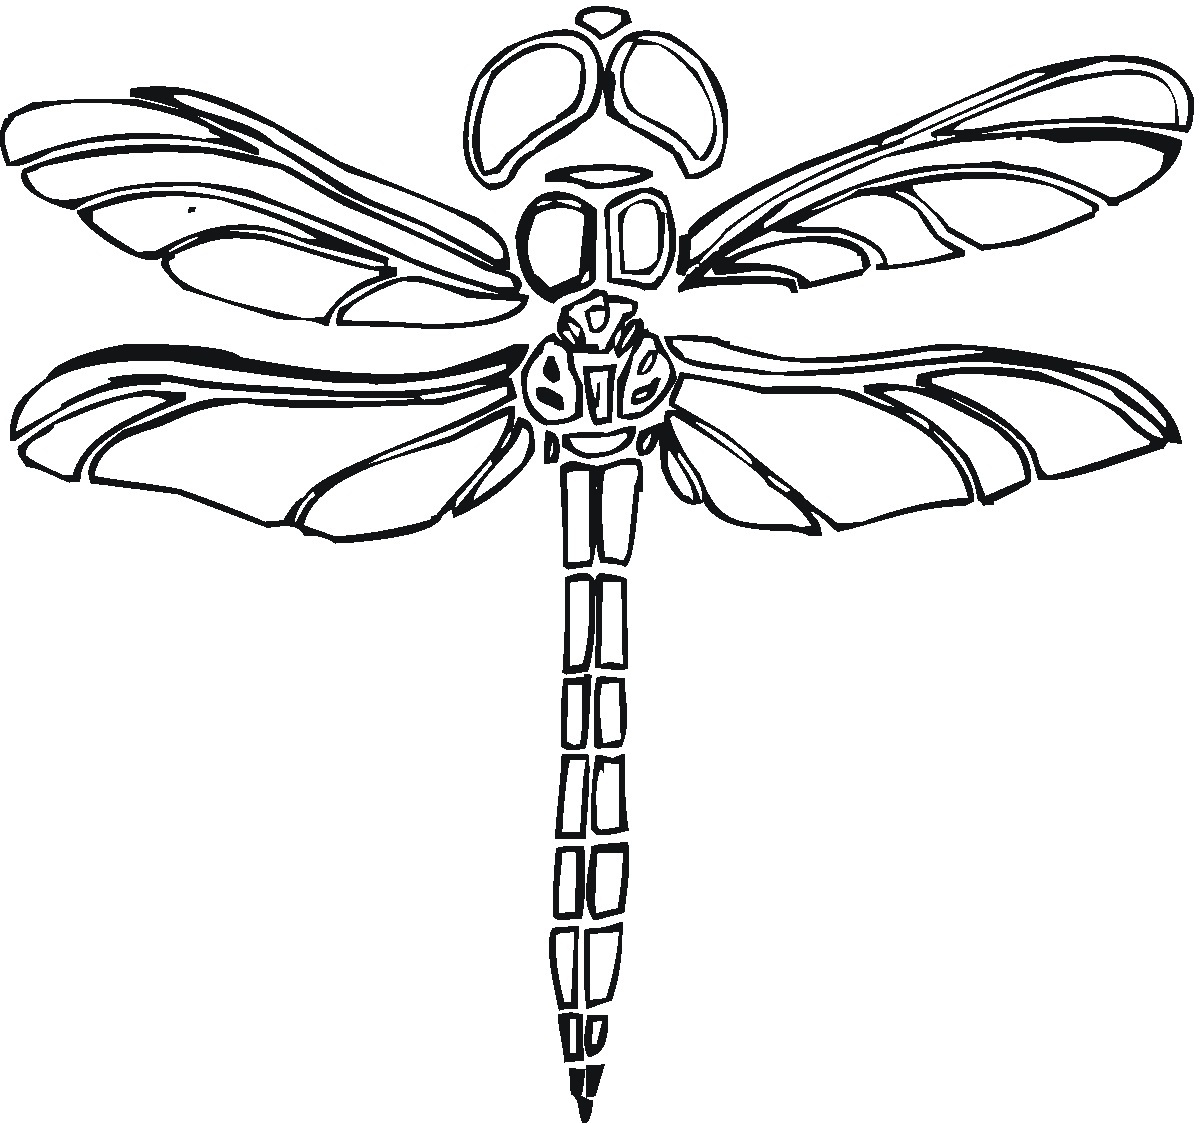 Printable Dragonfly Coloring Pages Coloring Me Dragonfly Coloring Pages